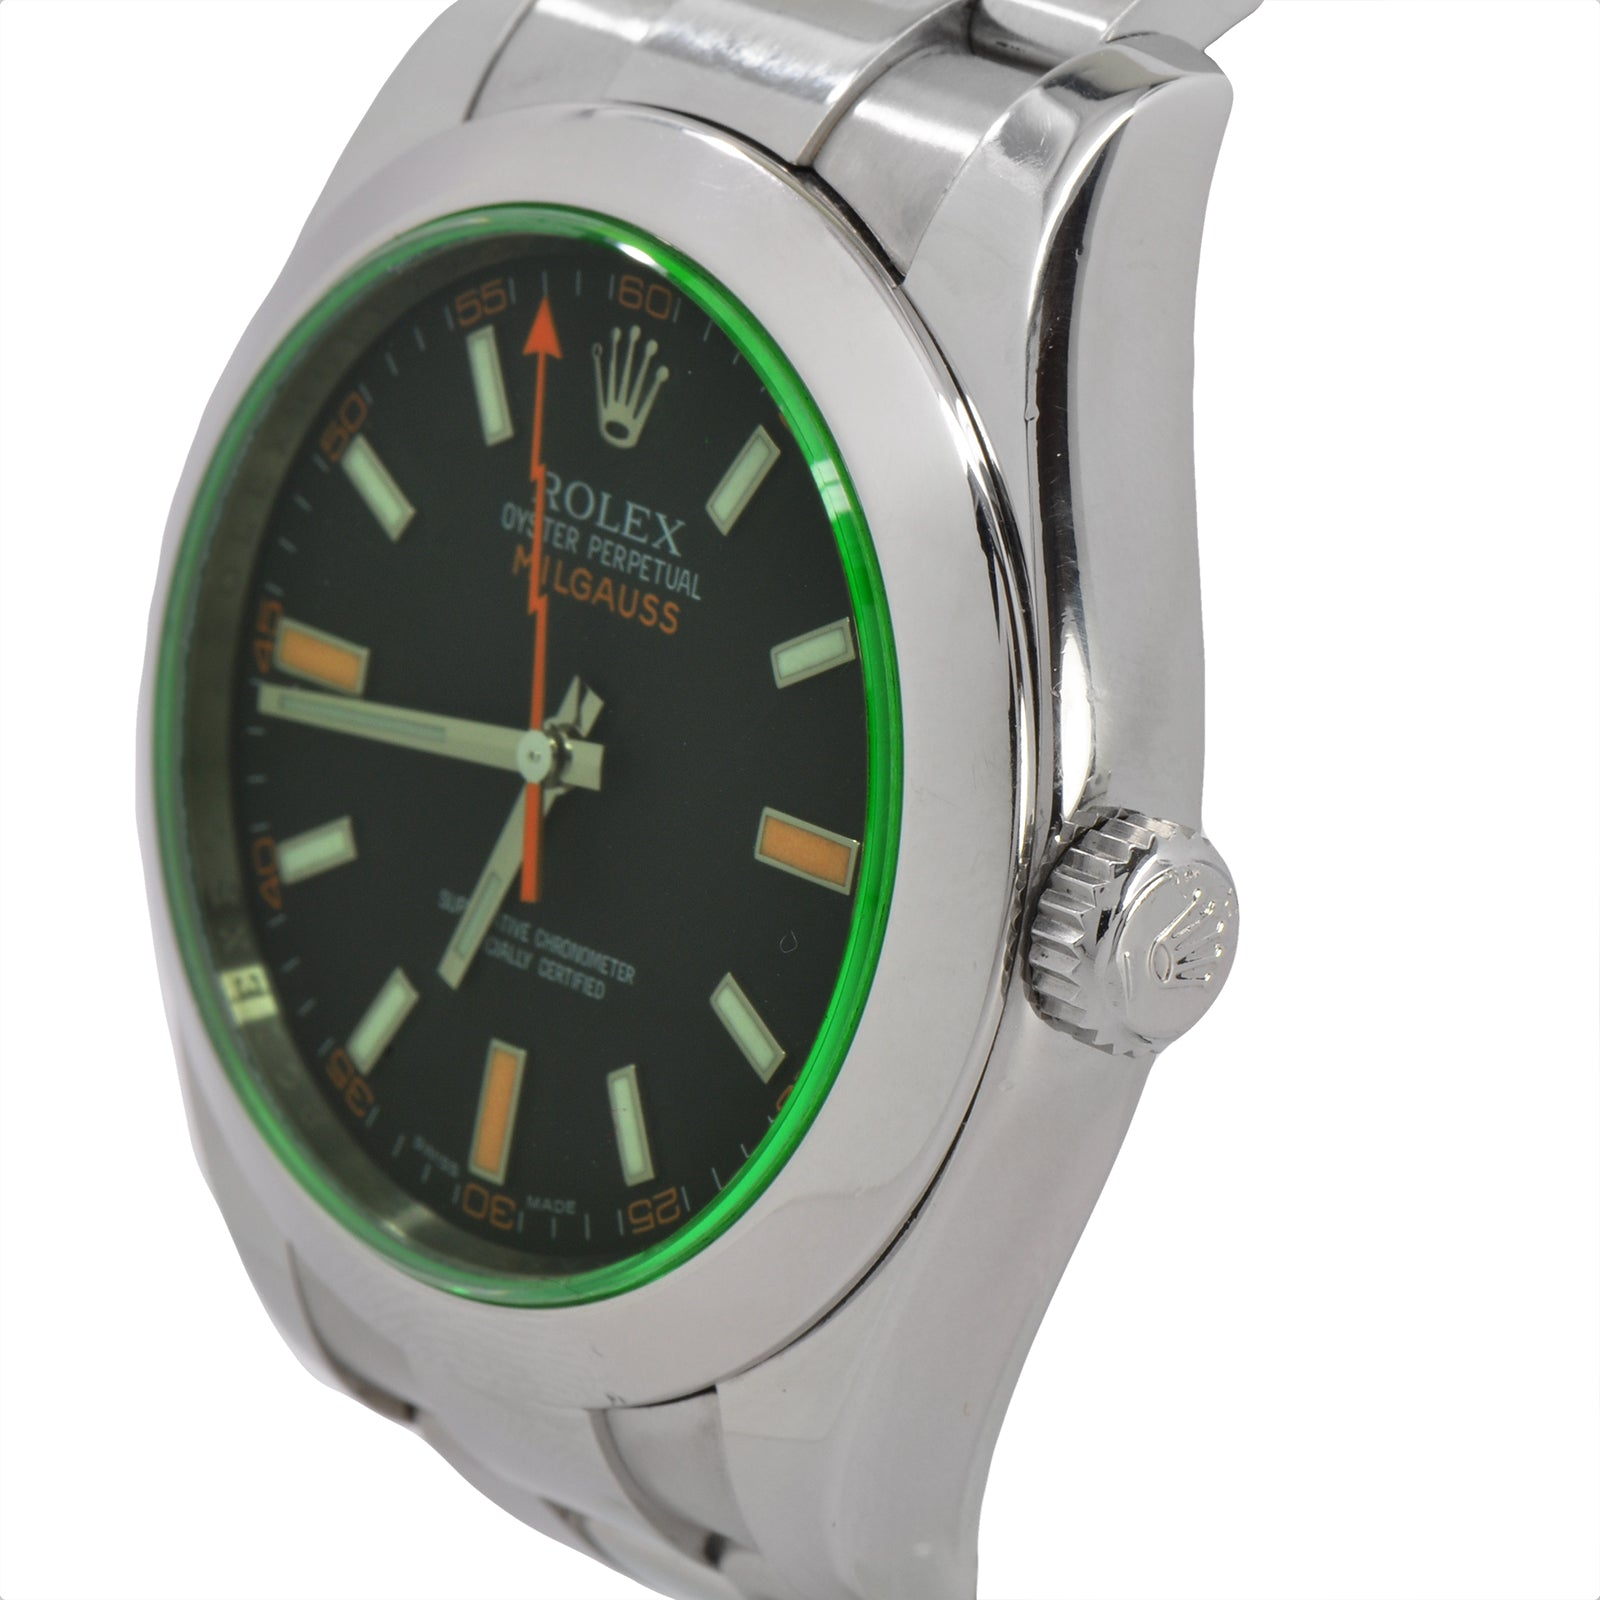 Rolex Milgauss Black Dial with Green Sapphire Crystal 116400GV-5